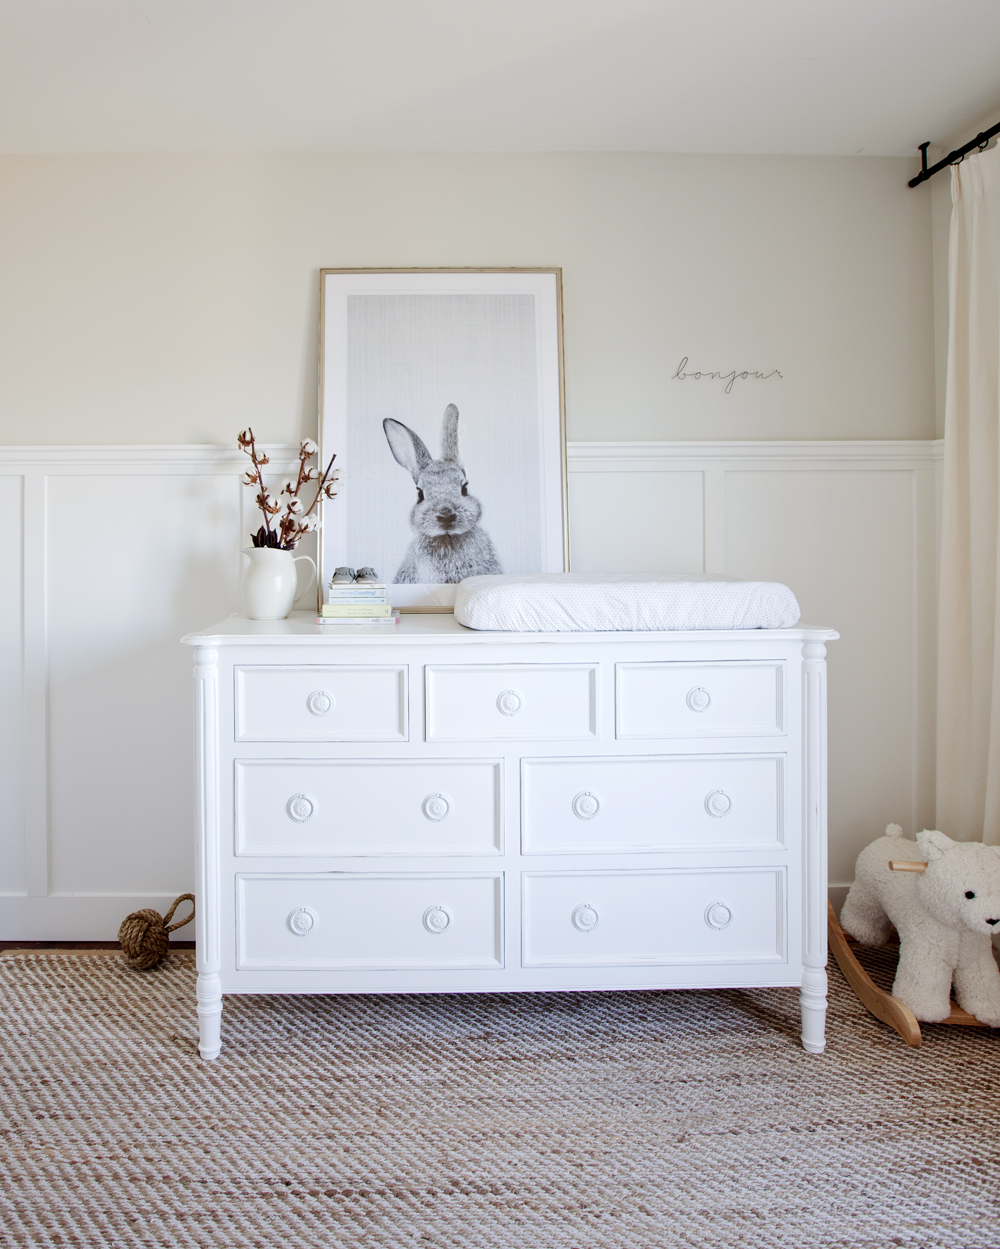 jillian-harris-nursery.jpg